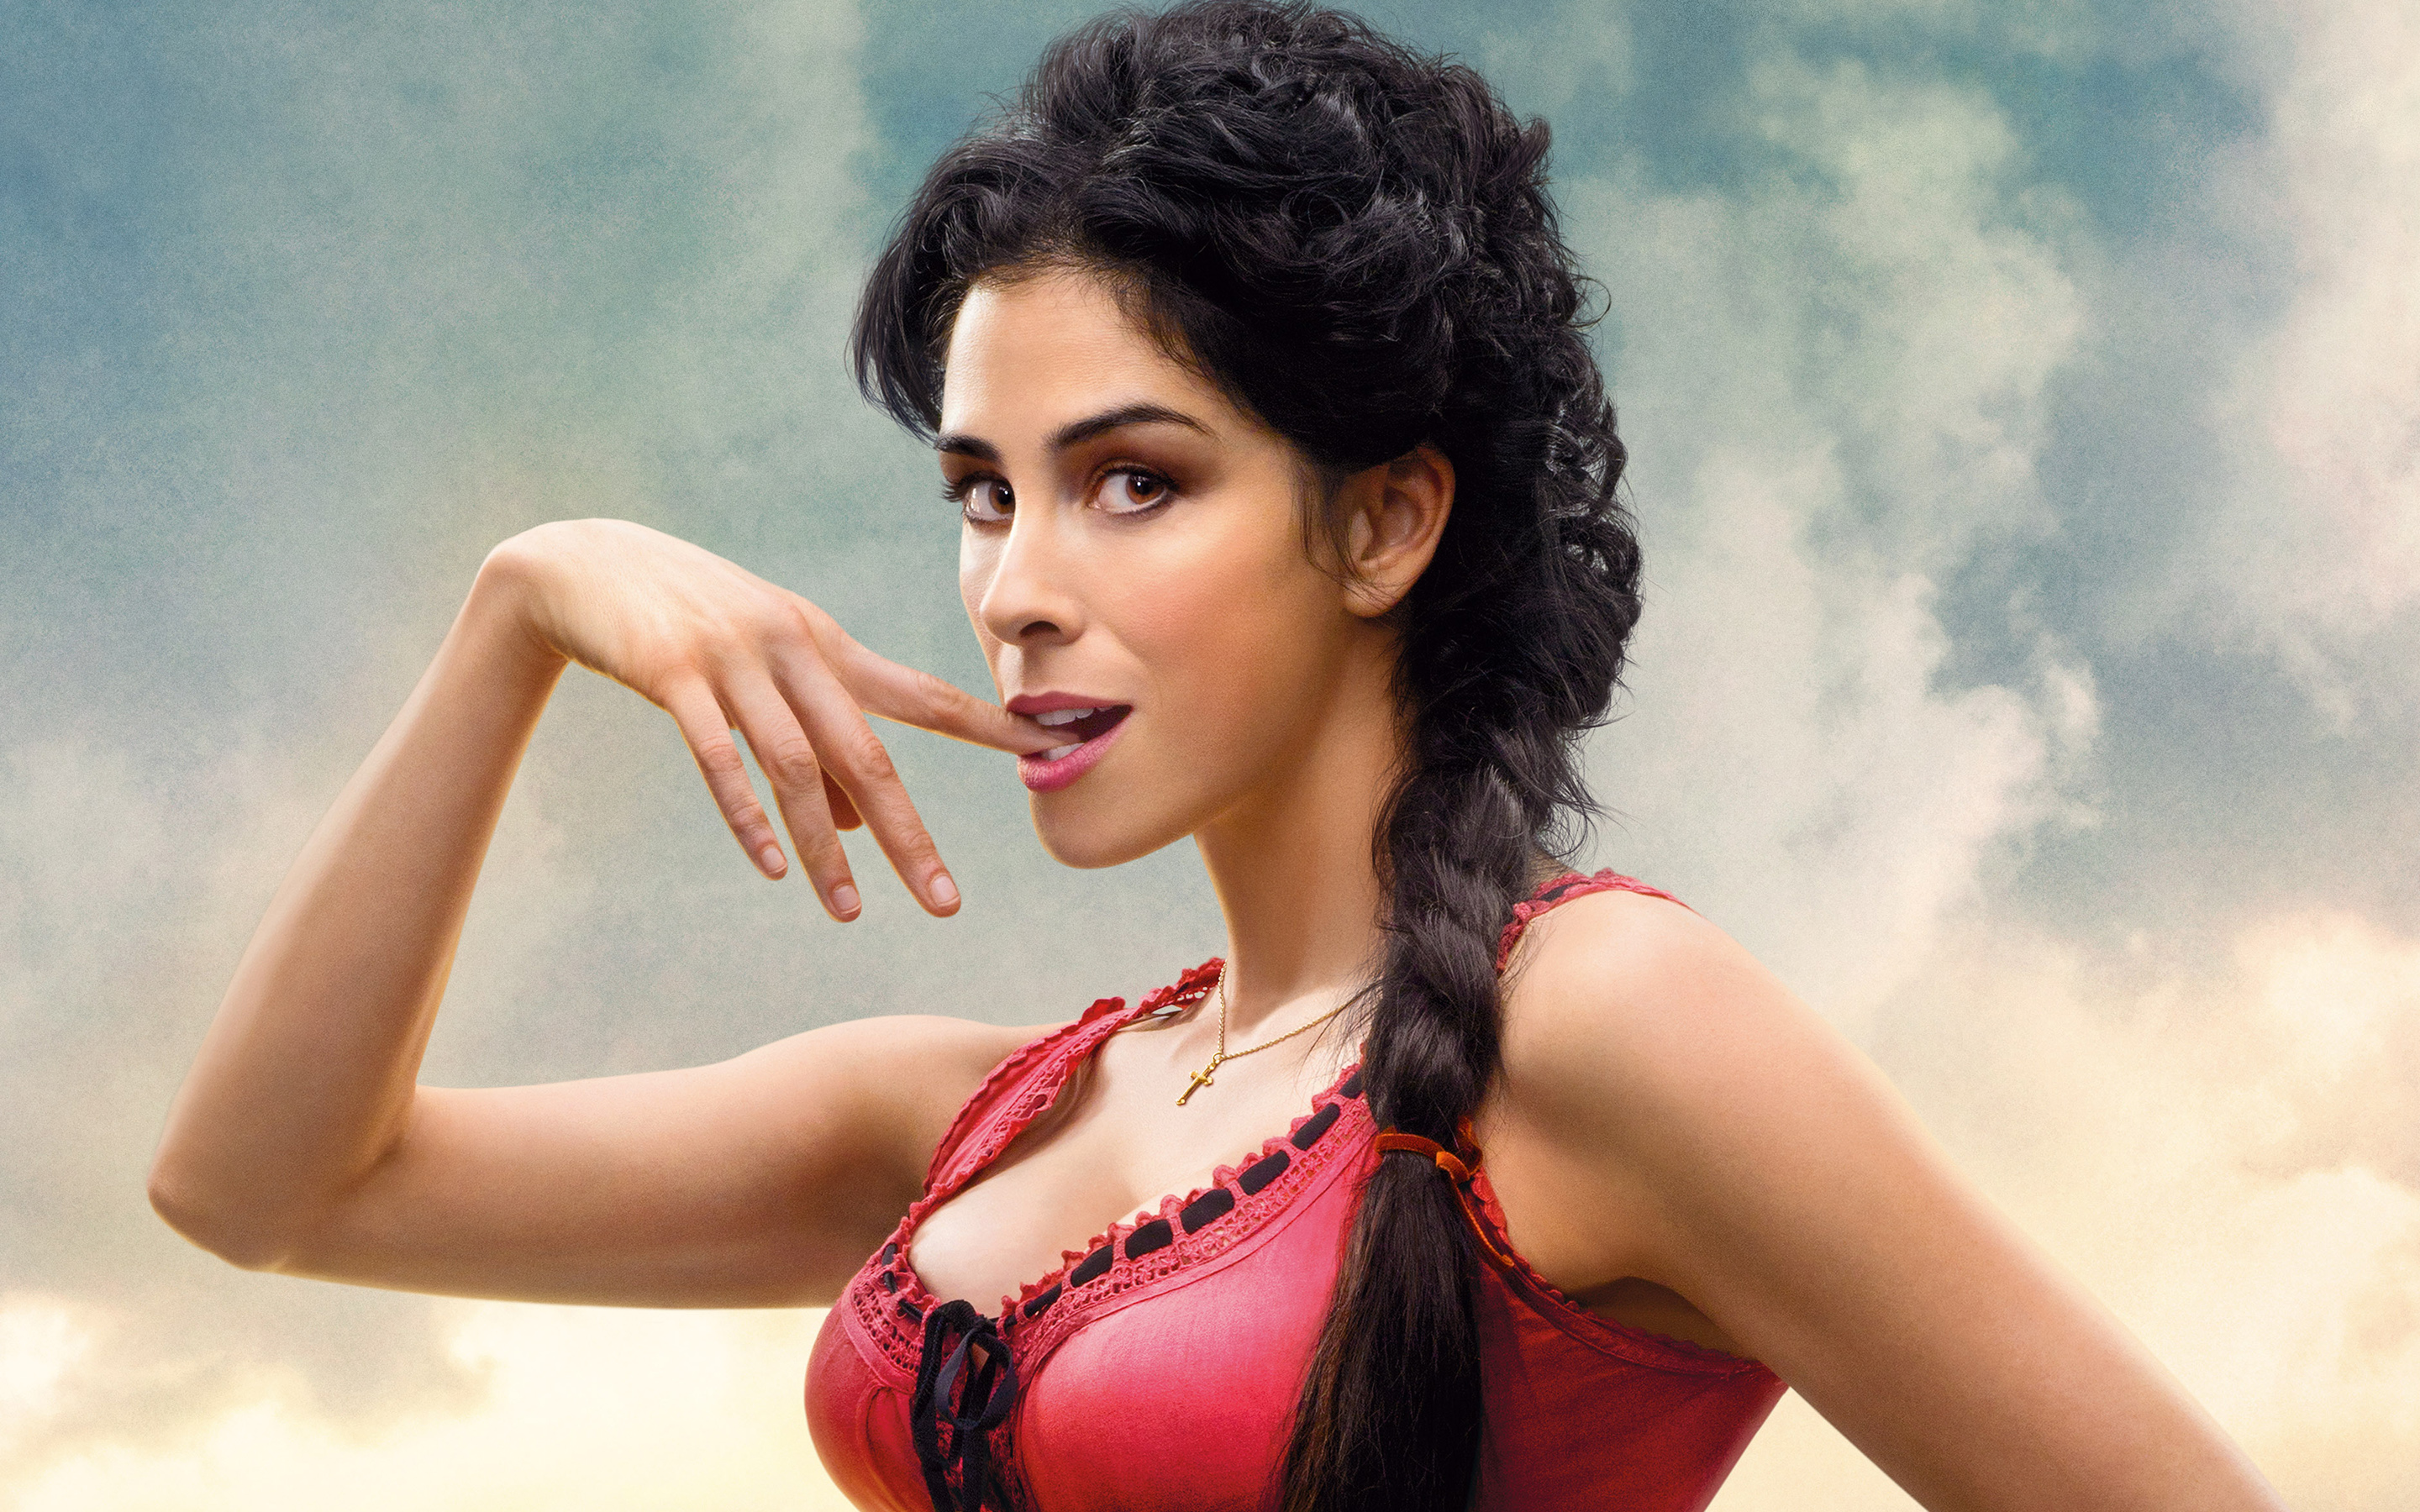 Sarah Silverman  in A Million Ways to Die in the West 317.58 Kb